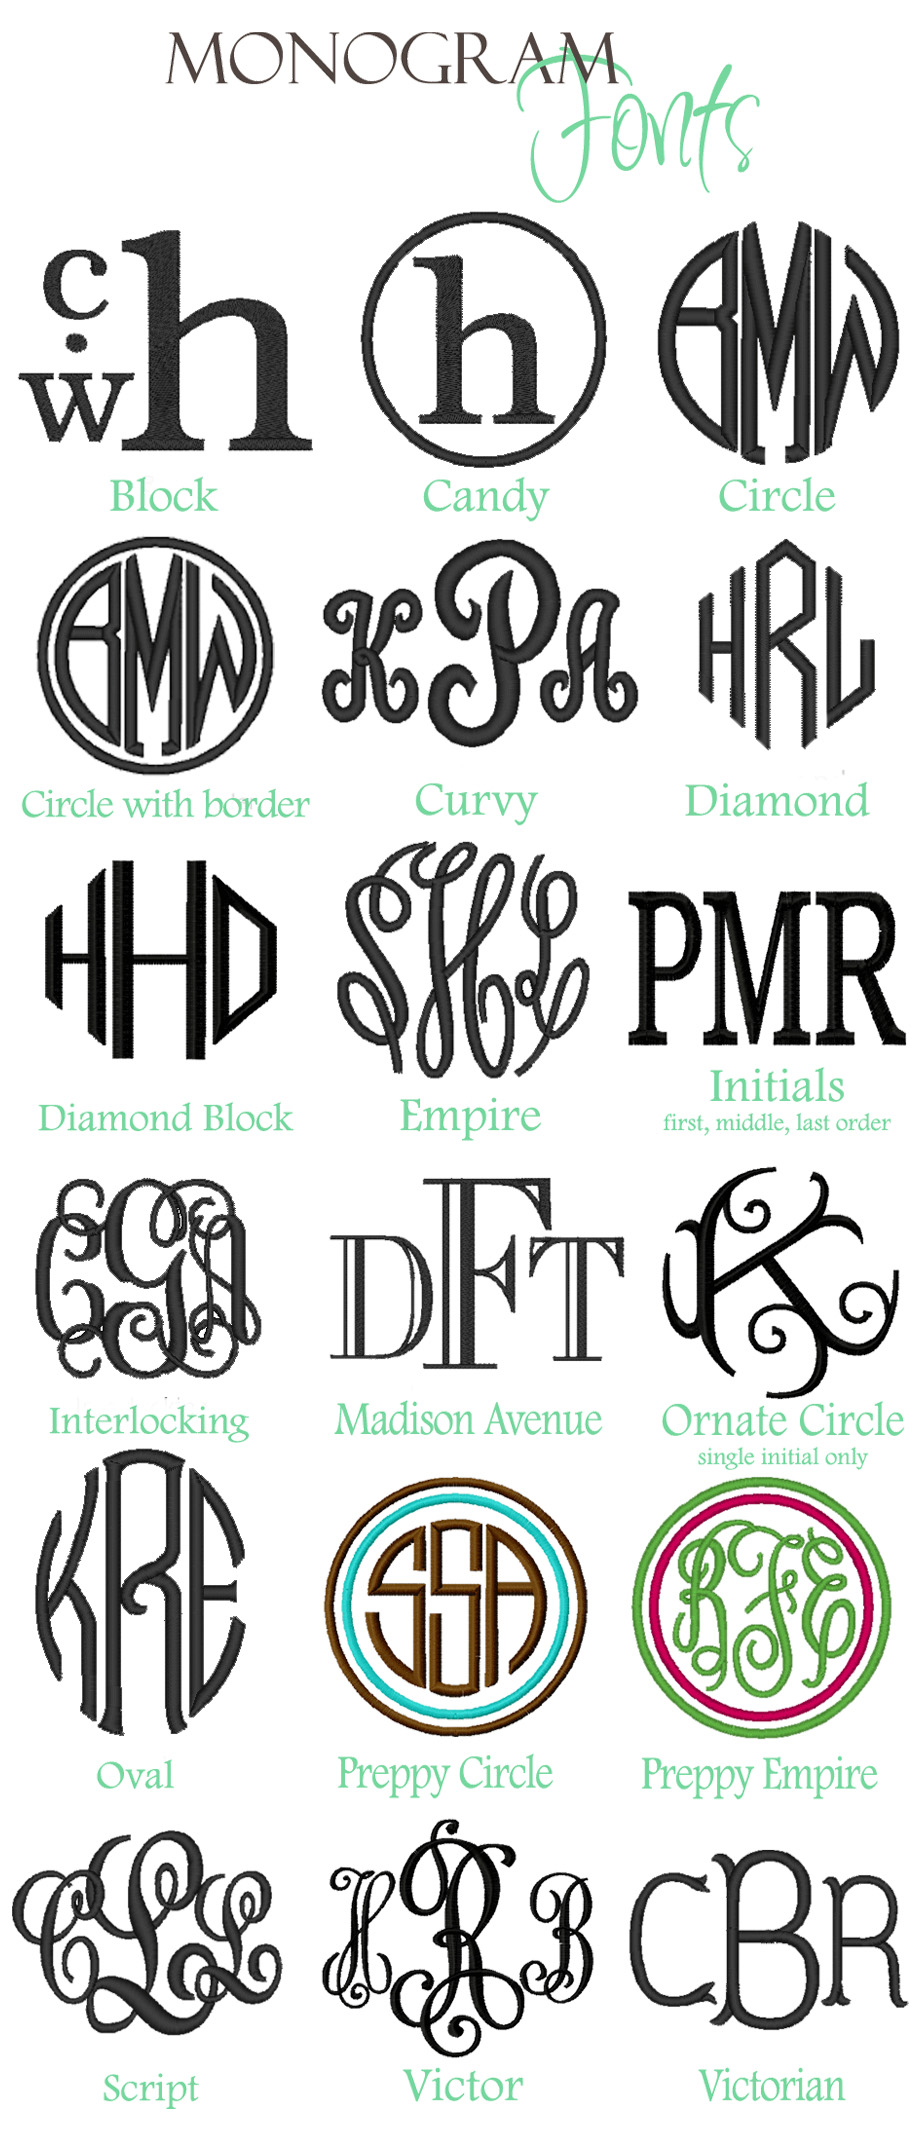 10 interlocking monogram font free download images